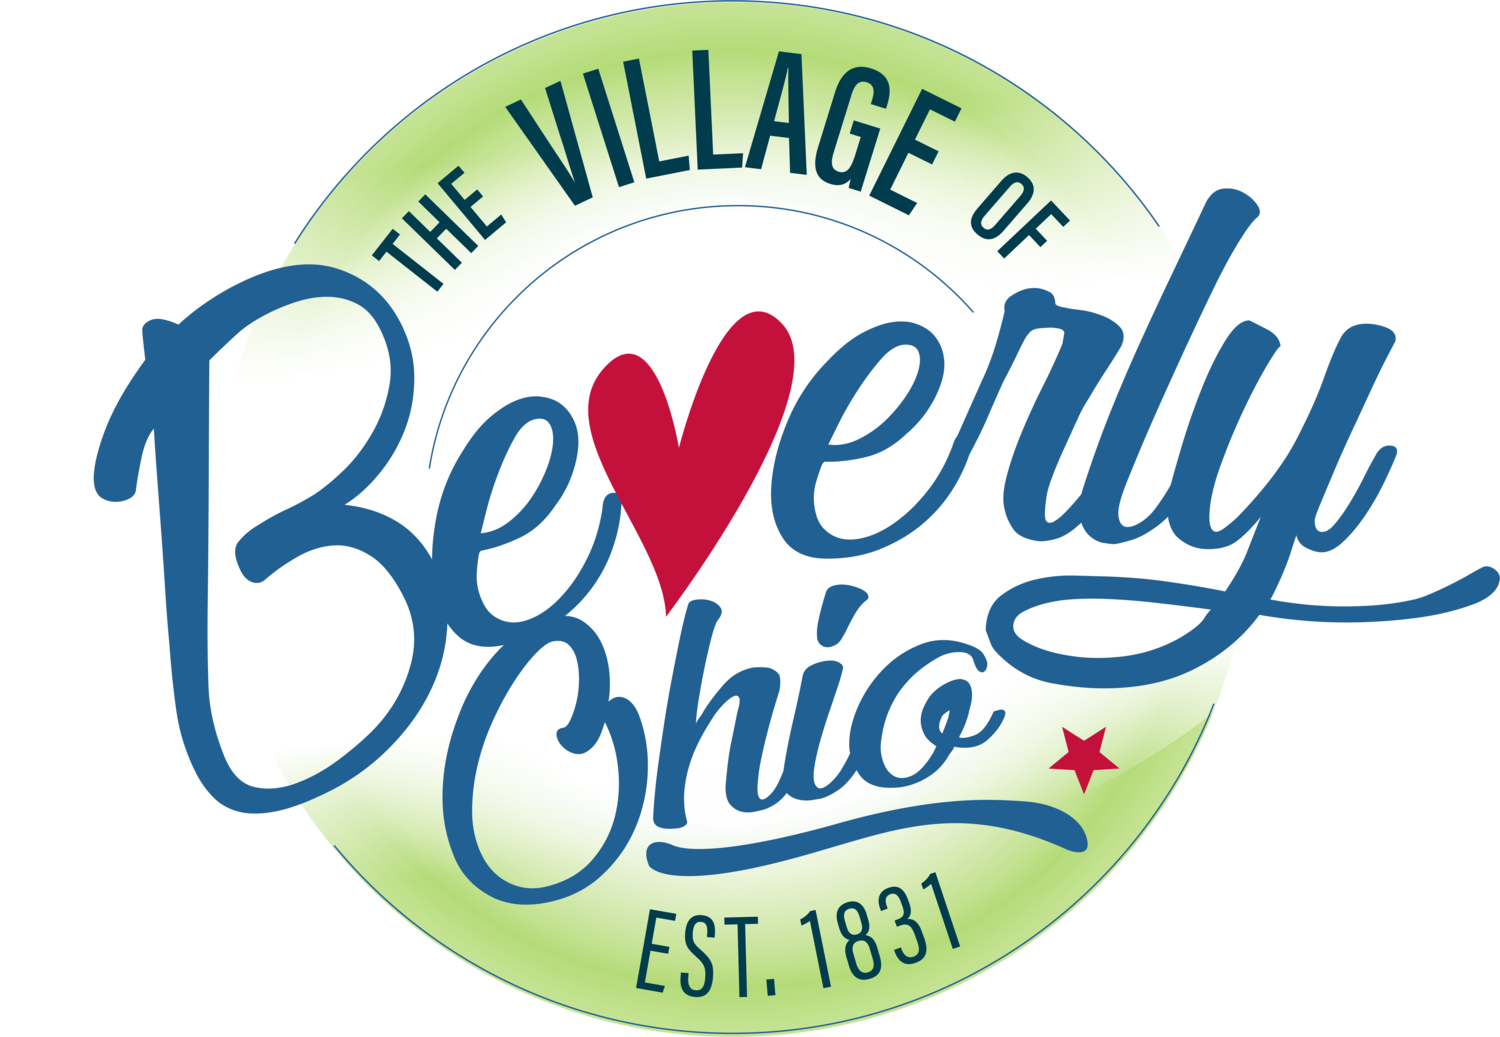 Village of Beverly Ohio